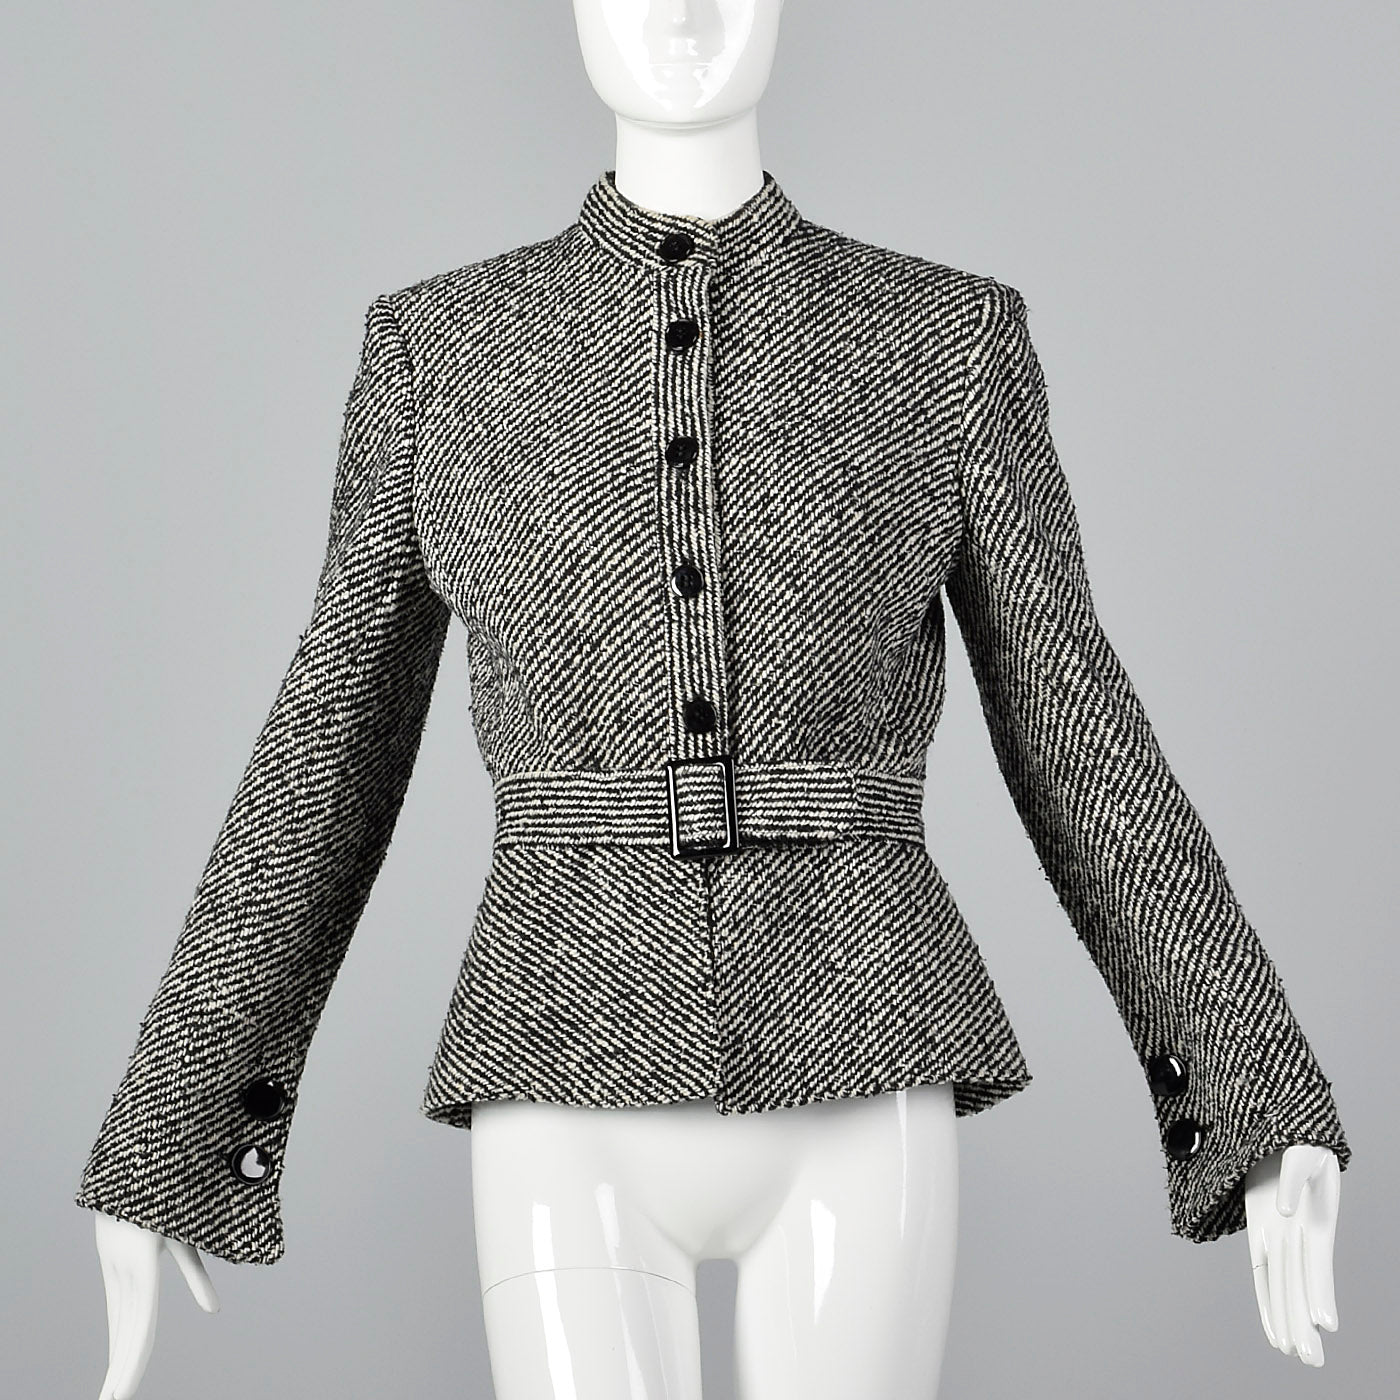 2000s Valentino Black and White Jacket with Belted Waist